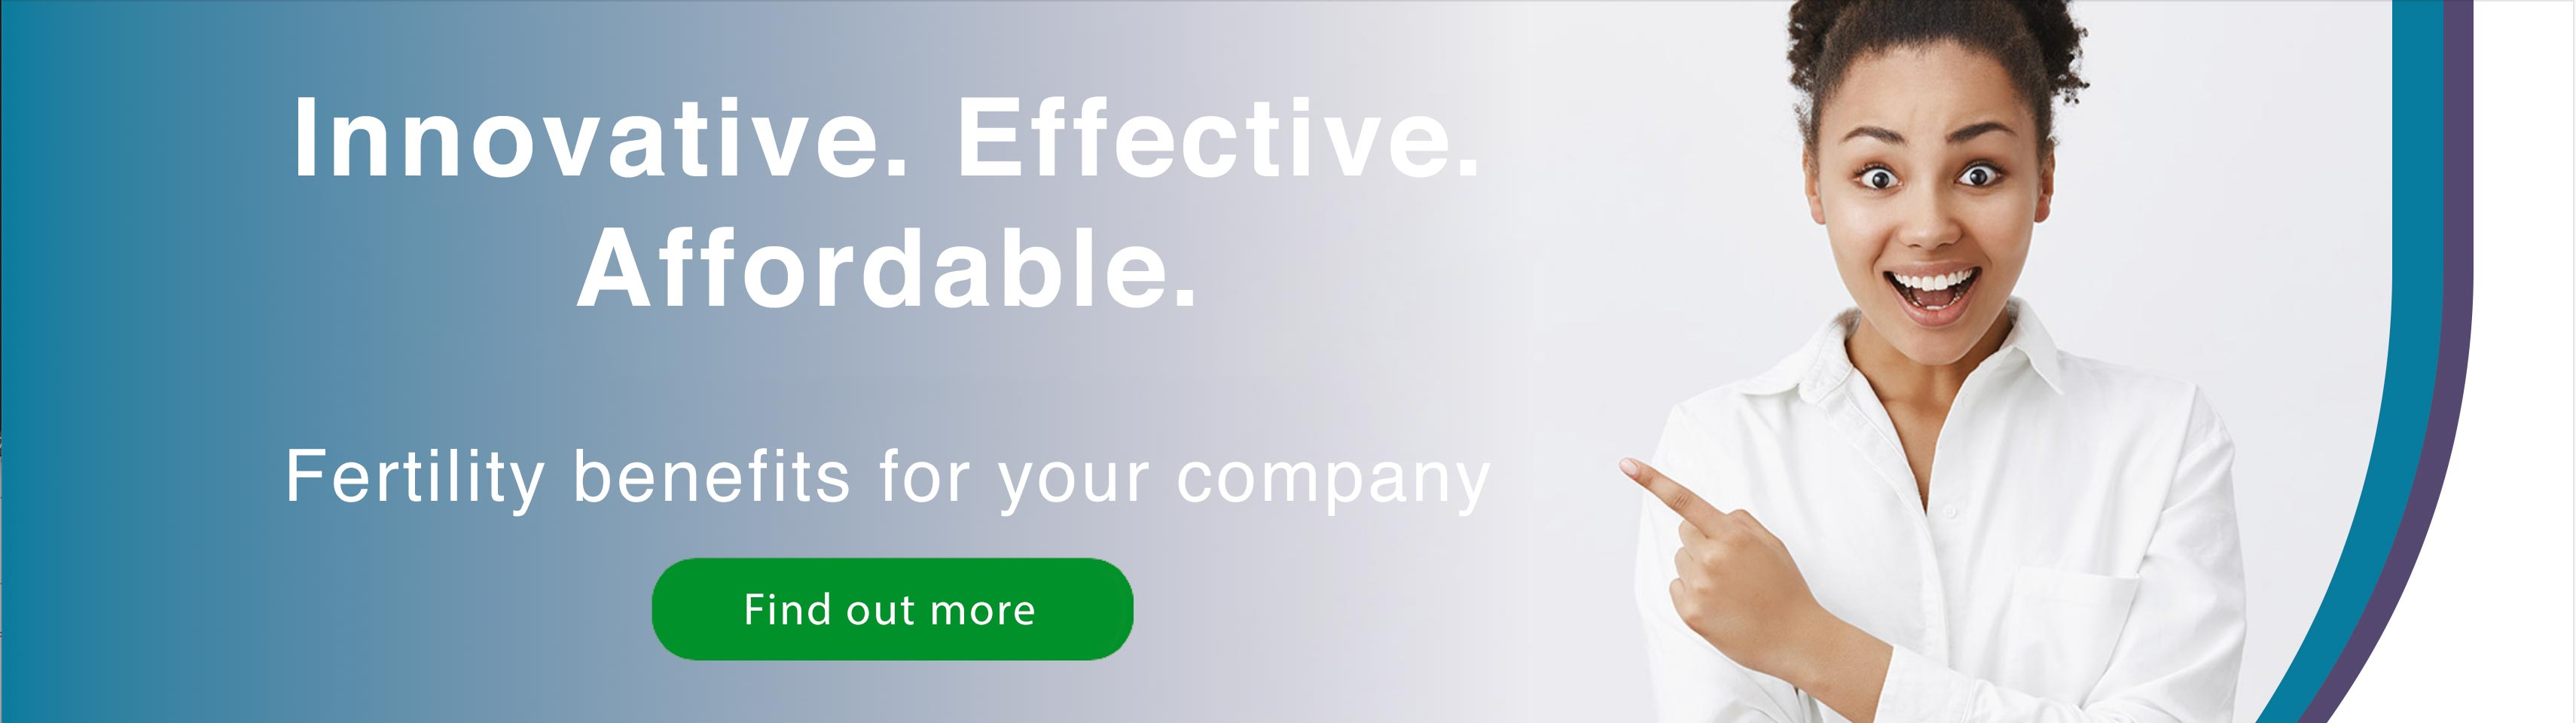 Fertility Solutions for Your Company